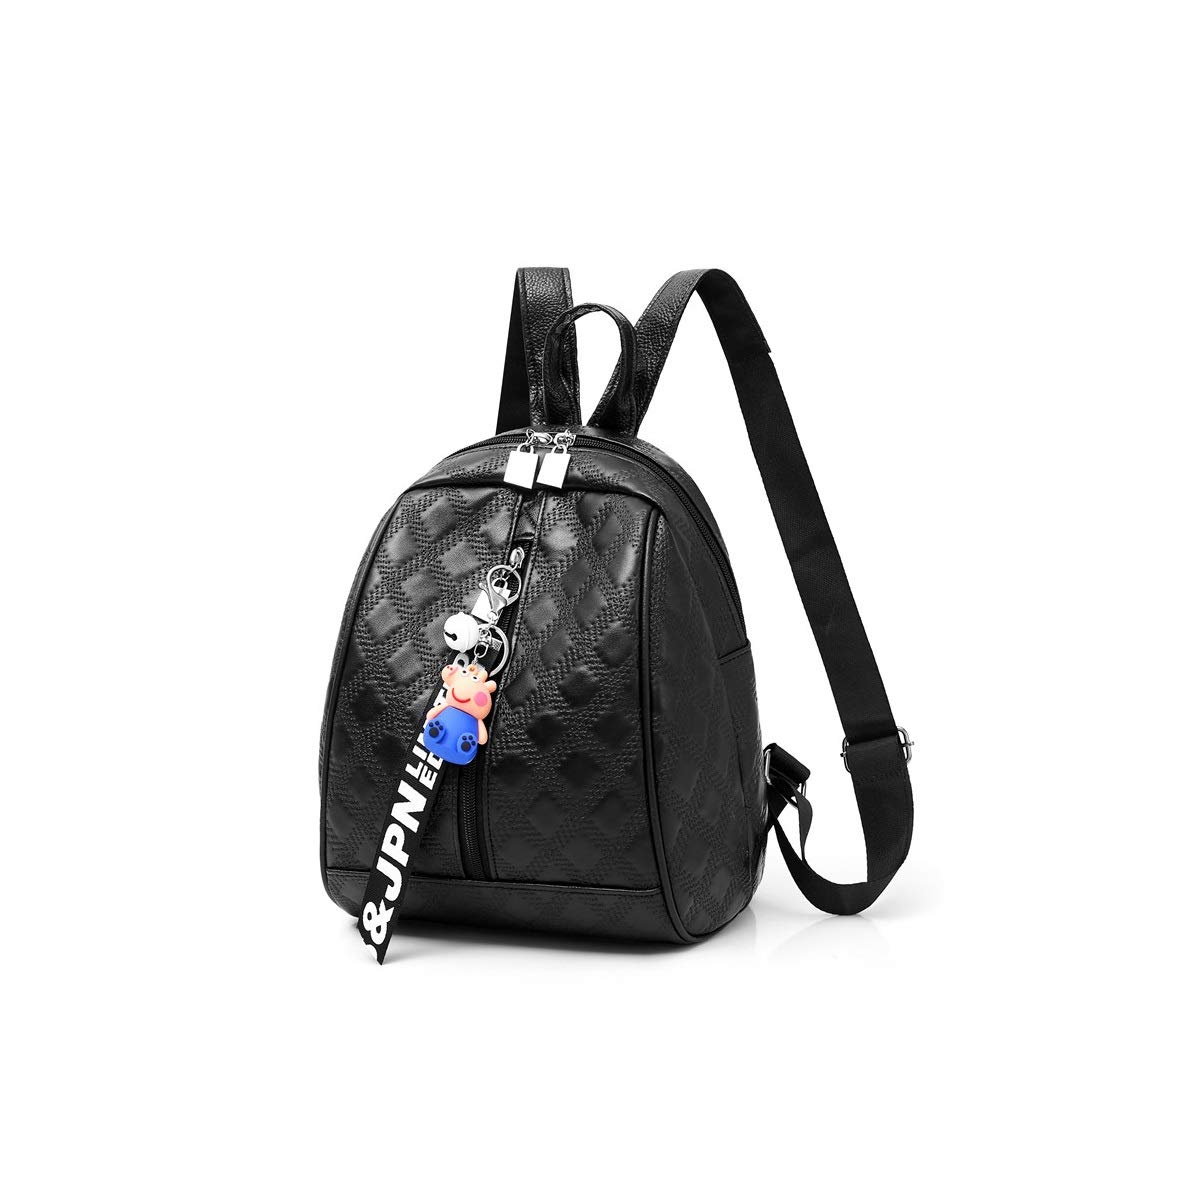 The Girl's Versatile Backpack is Perfect for Everyday Travel, Outdoor, Travel, School, Work, Fashion and Leisure. Black Diamond Pattern. (color   Black, Size   24cm28cm15cm)